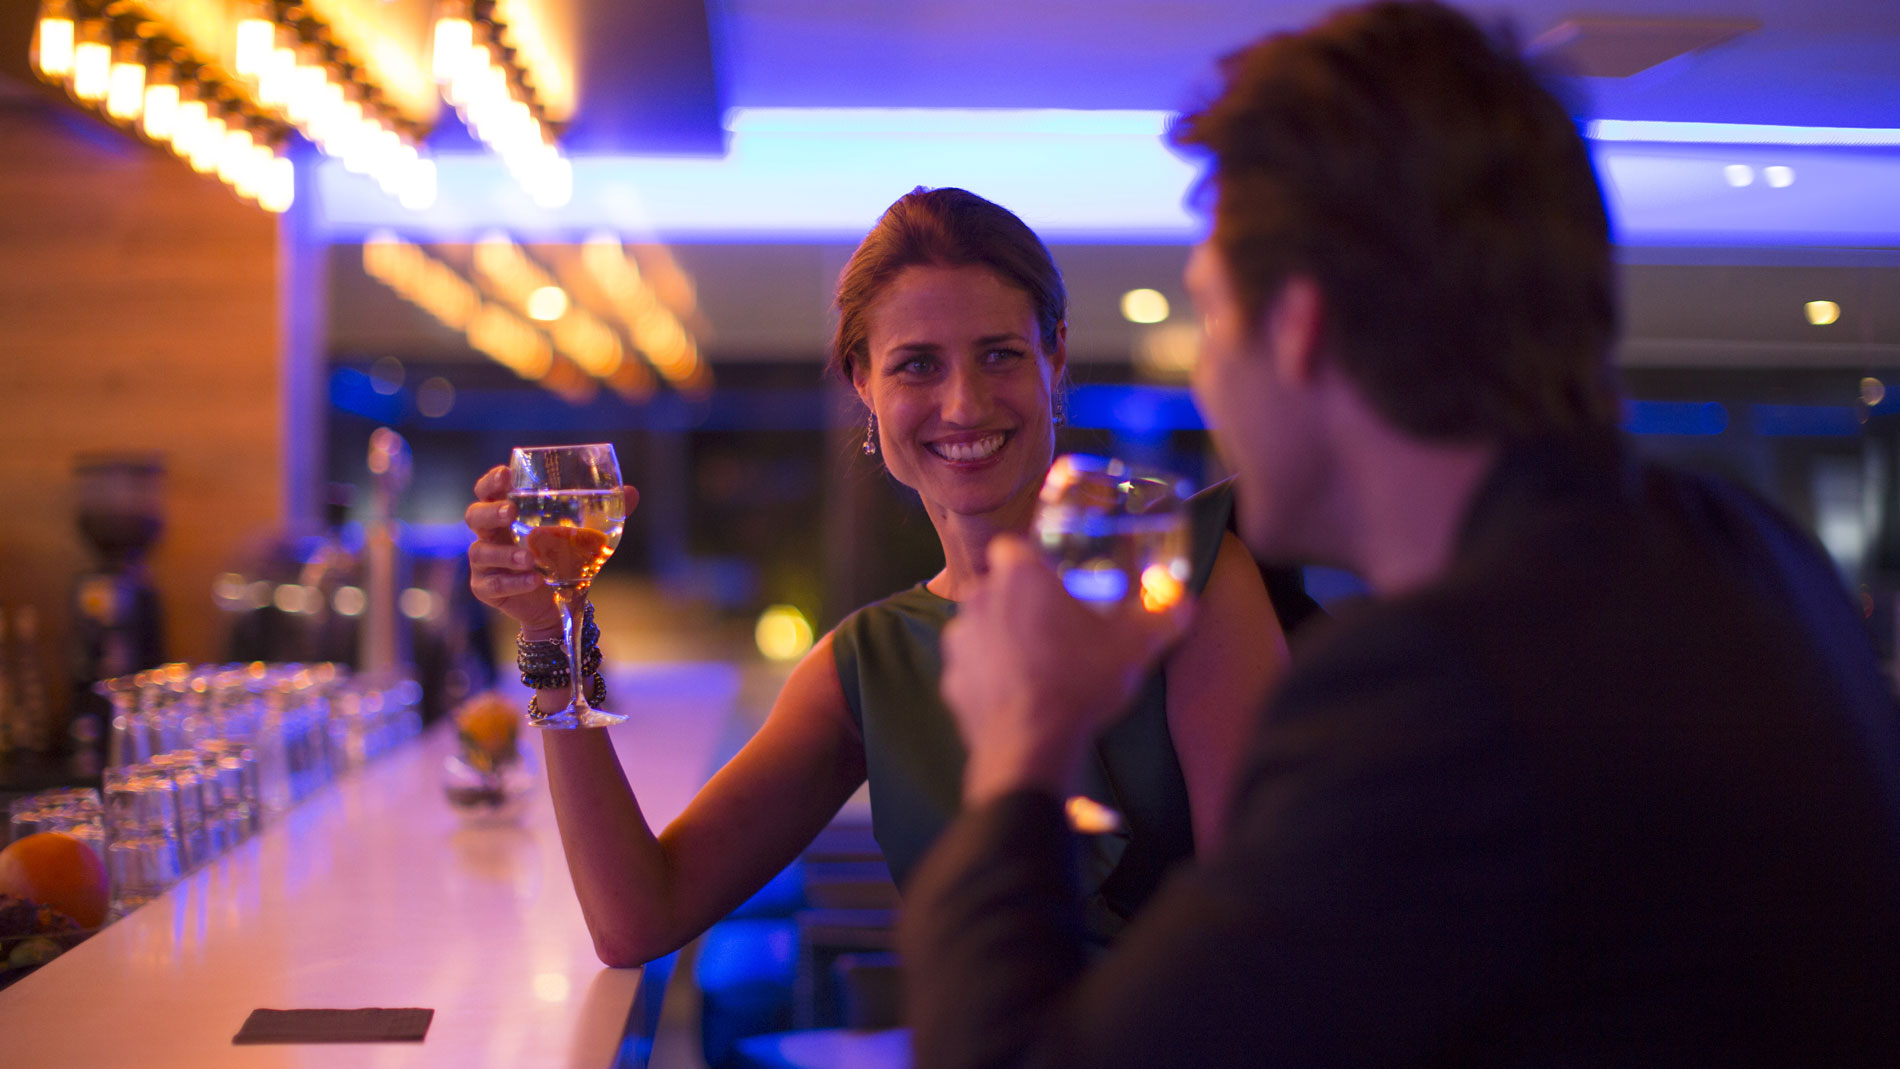 Bartenders Dating Advice